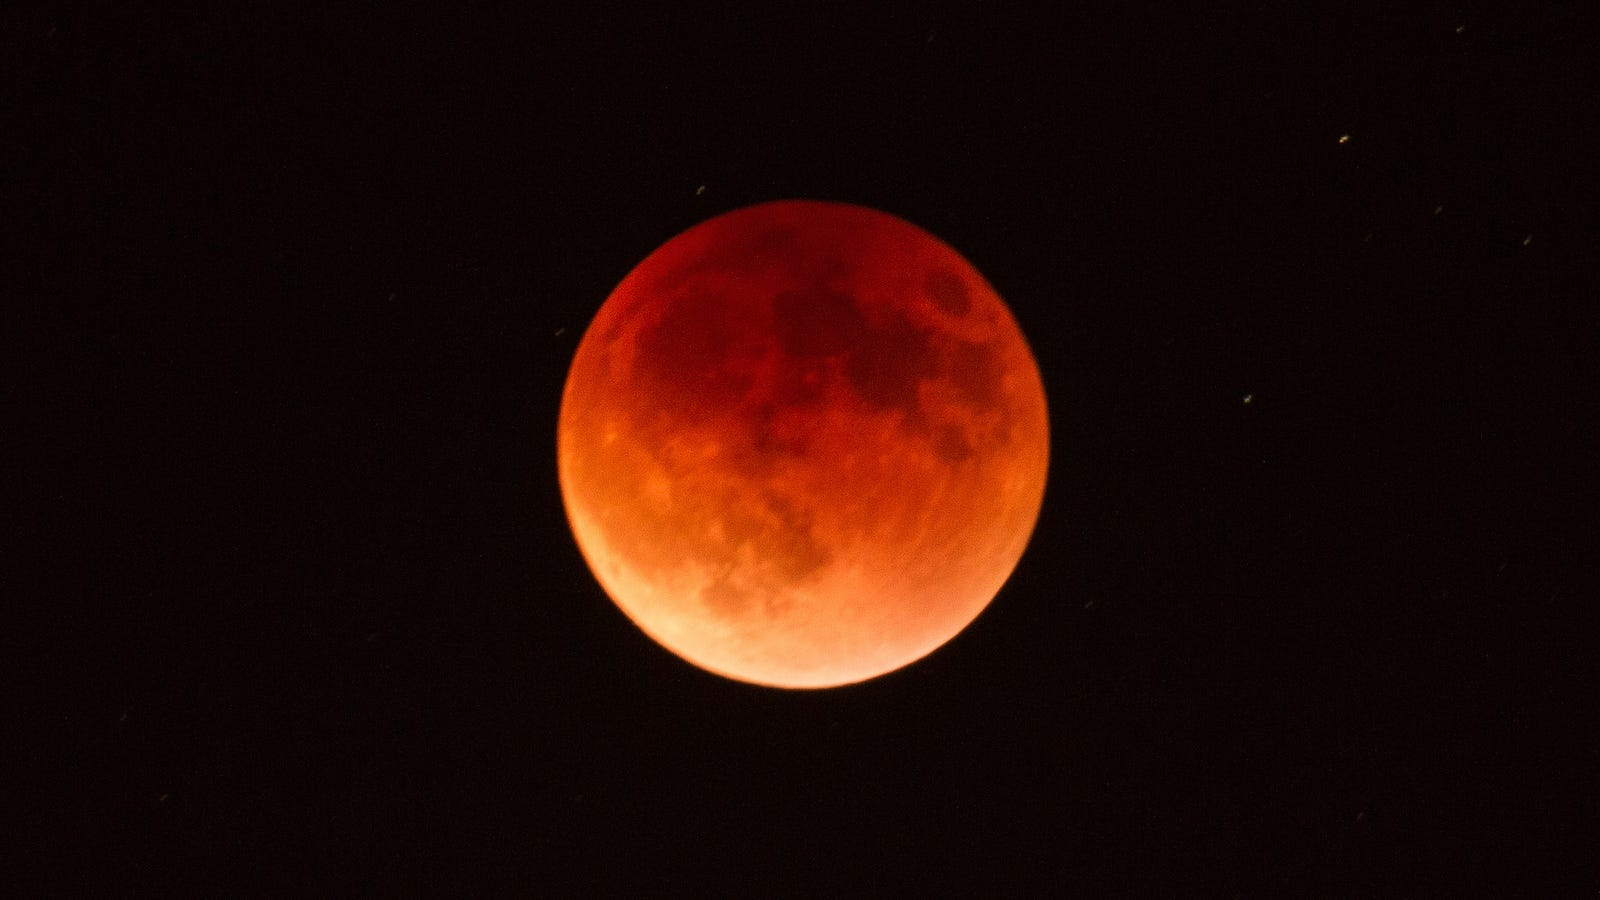 North America Will Not Be Able To See The Longest Lunar Eclipse Of